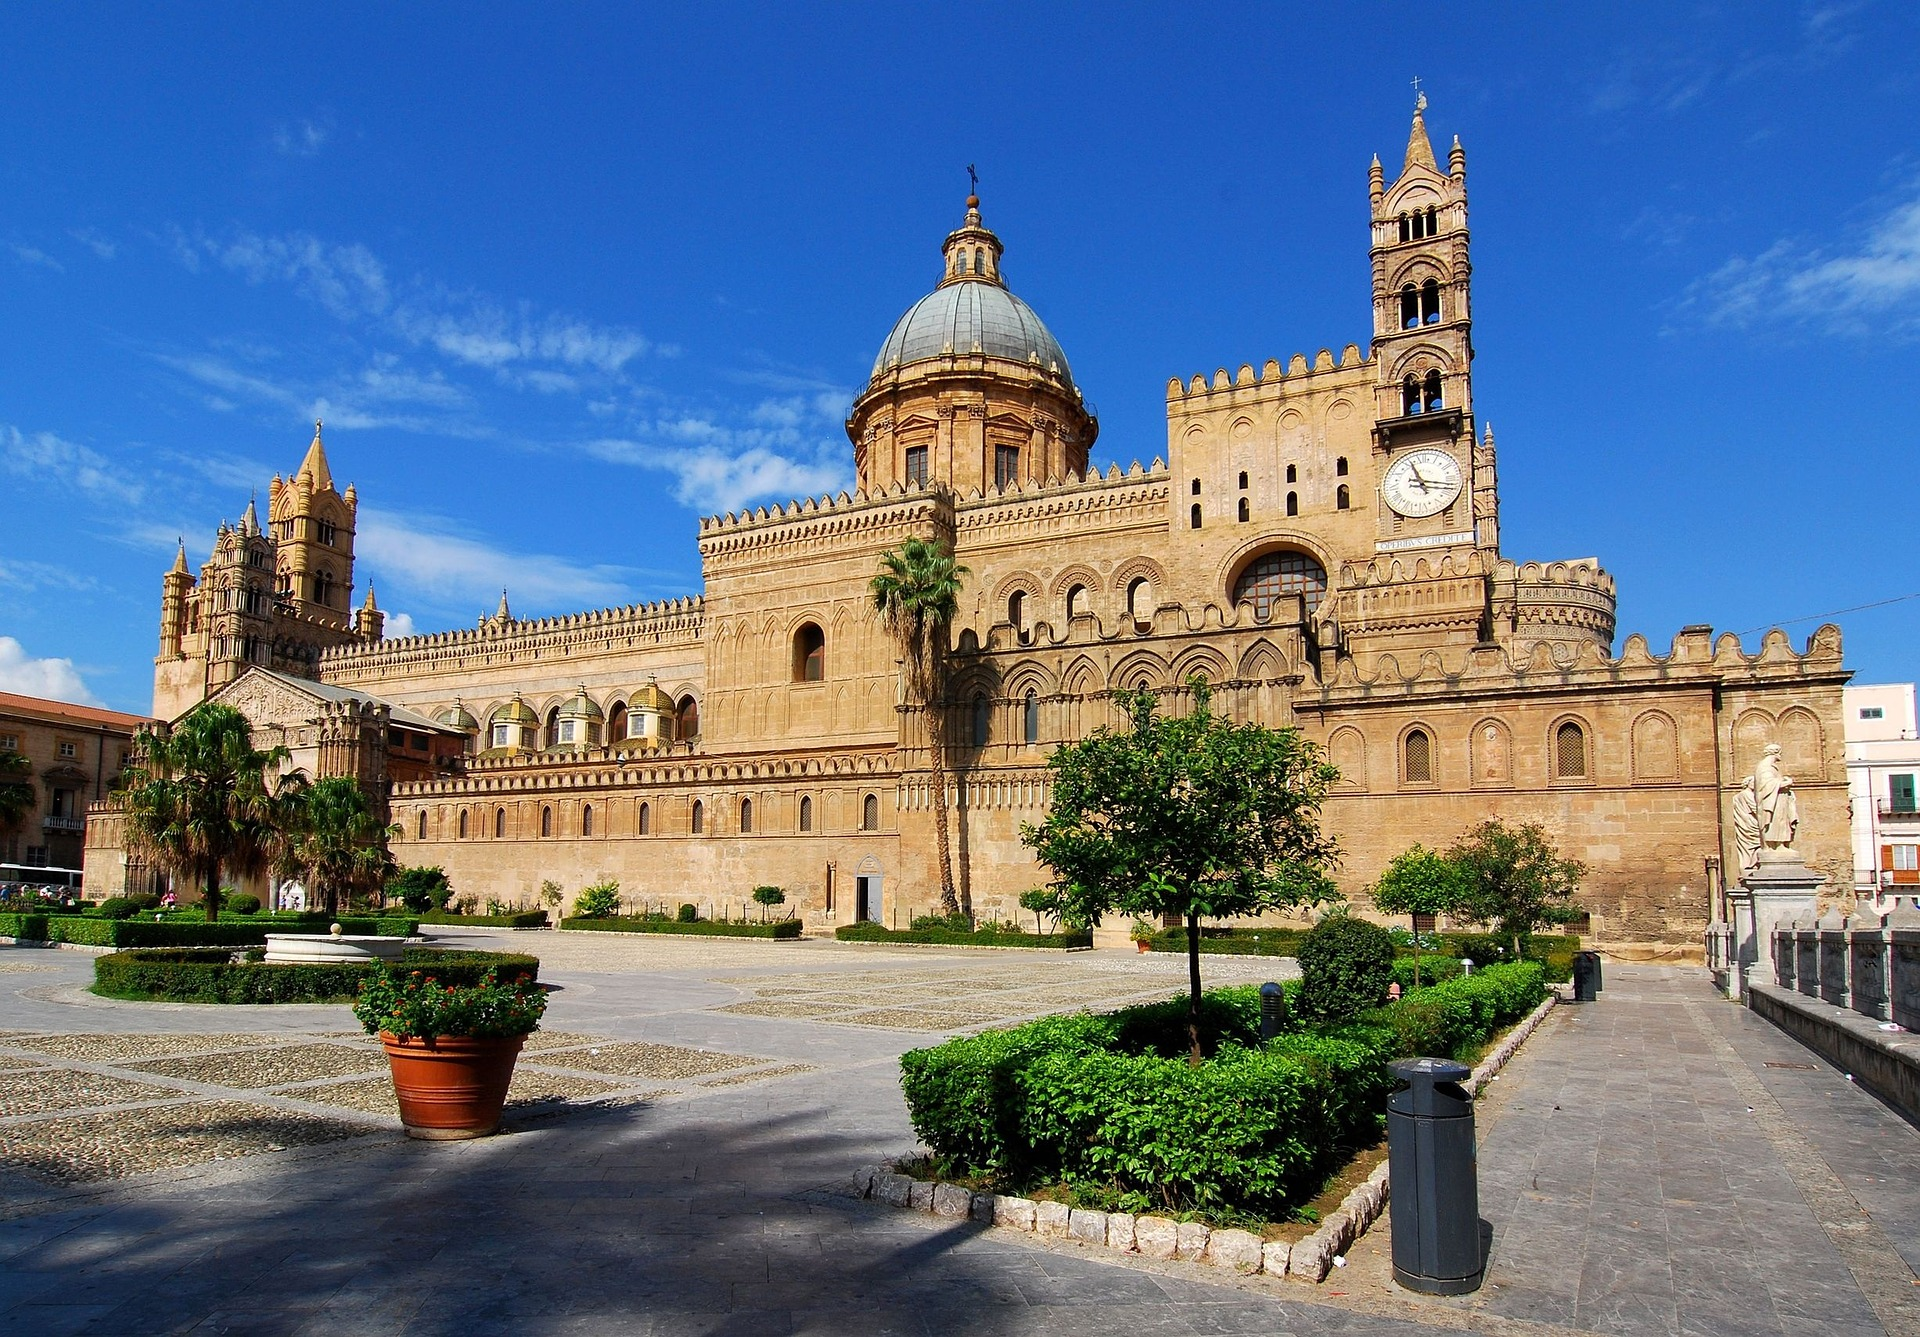 City to City Hop: 8 Exciting Things to See on a Transfer Tour of Sicily